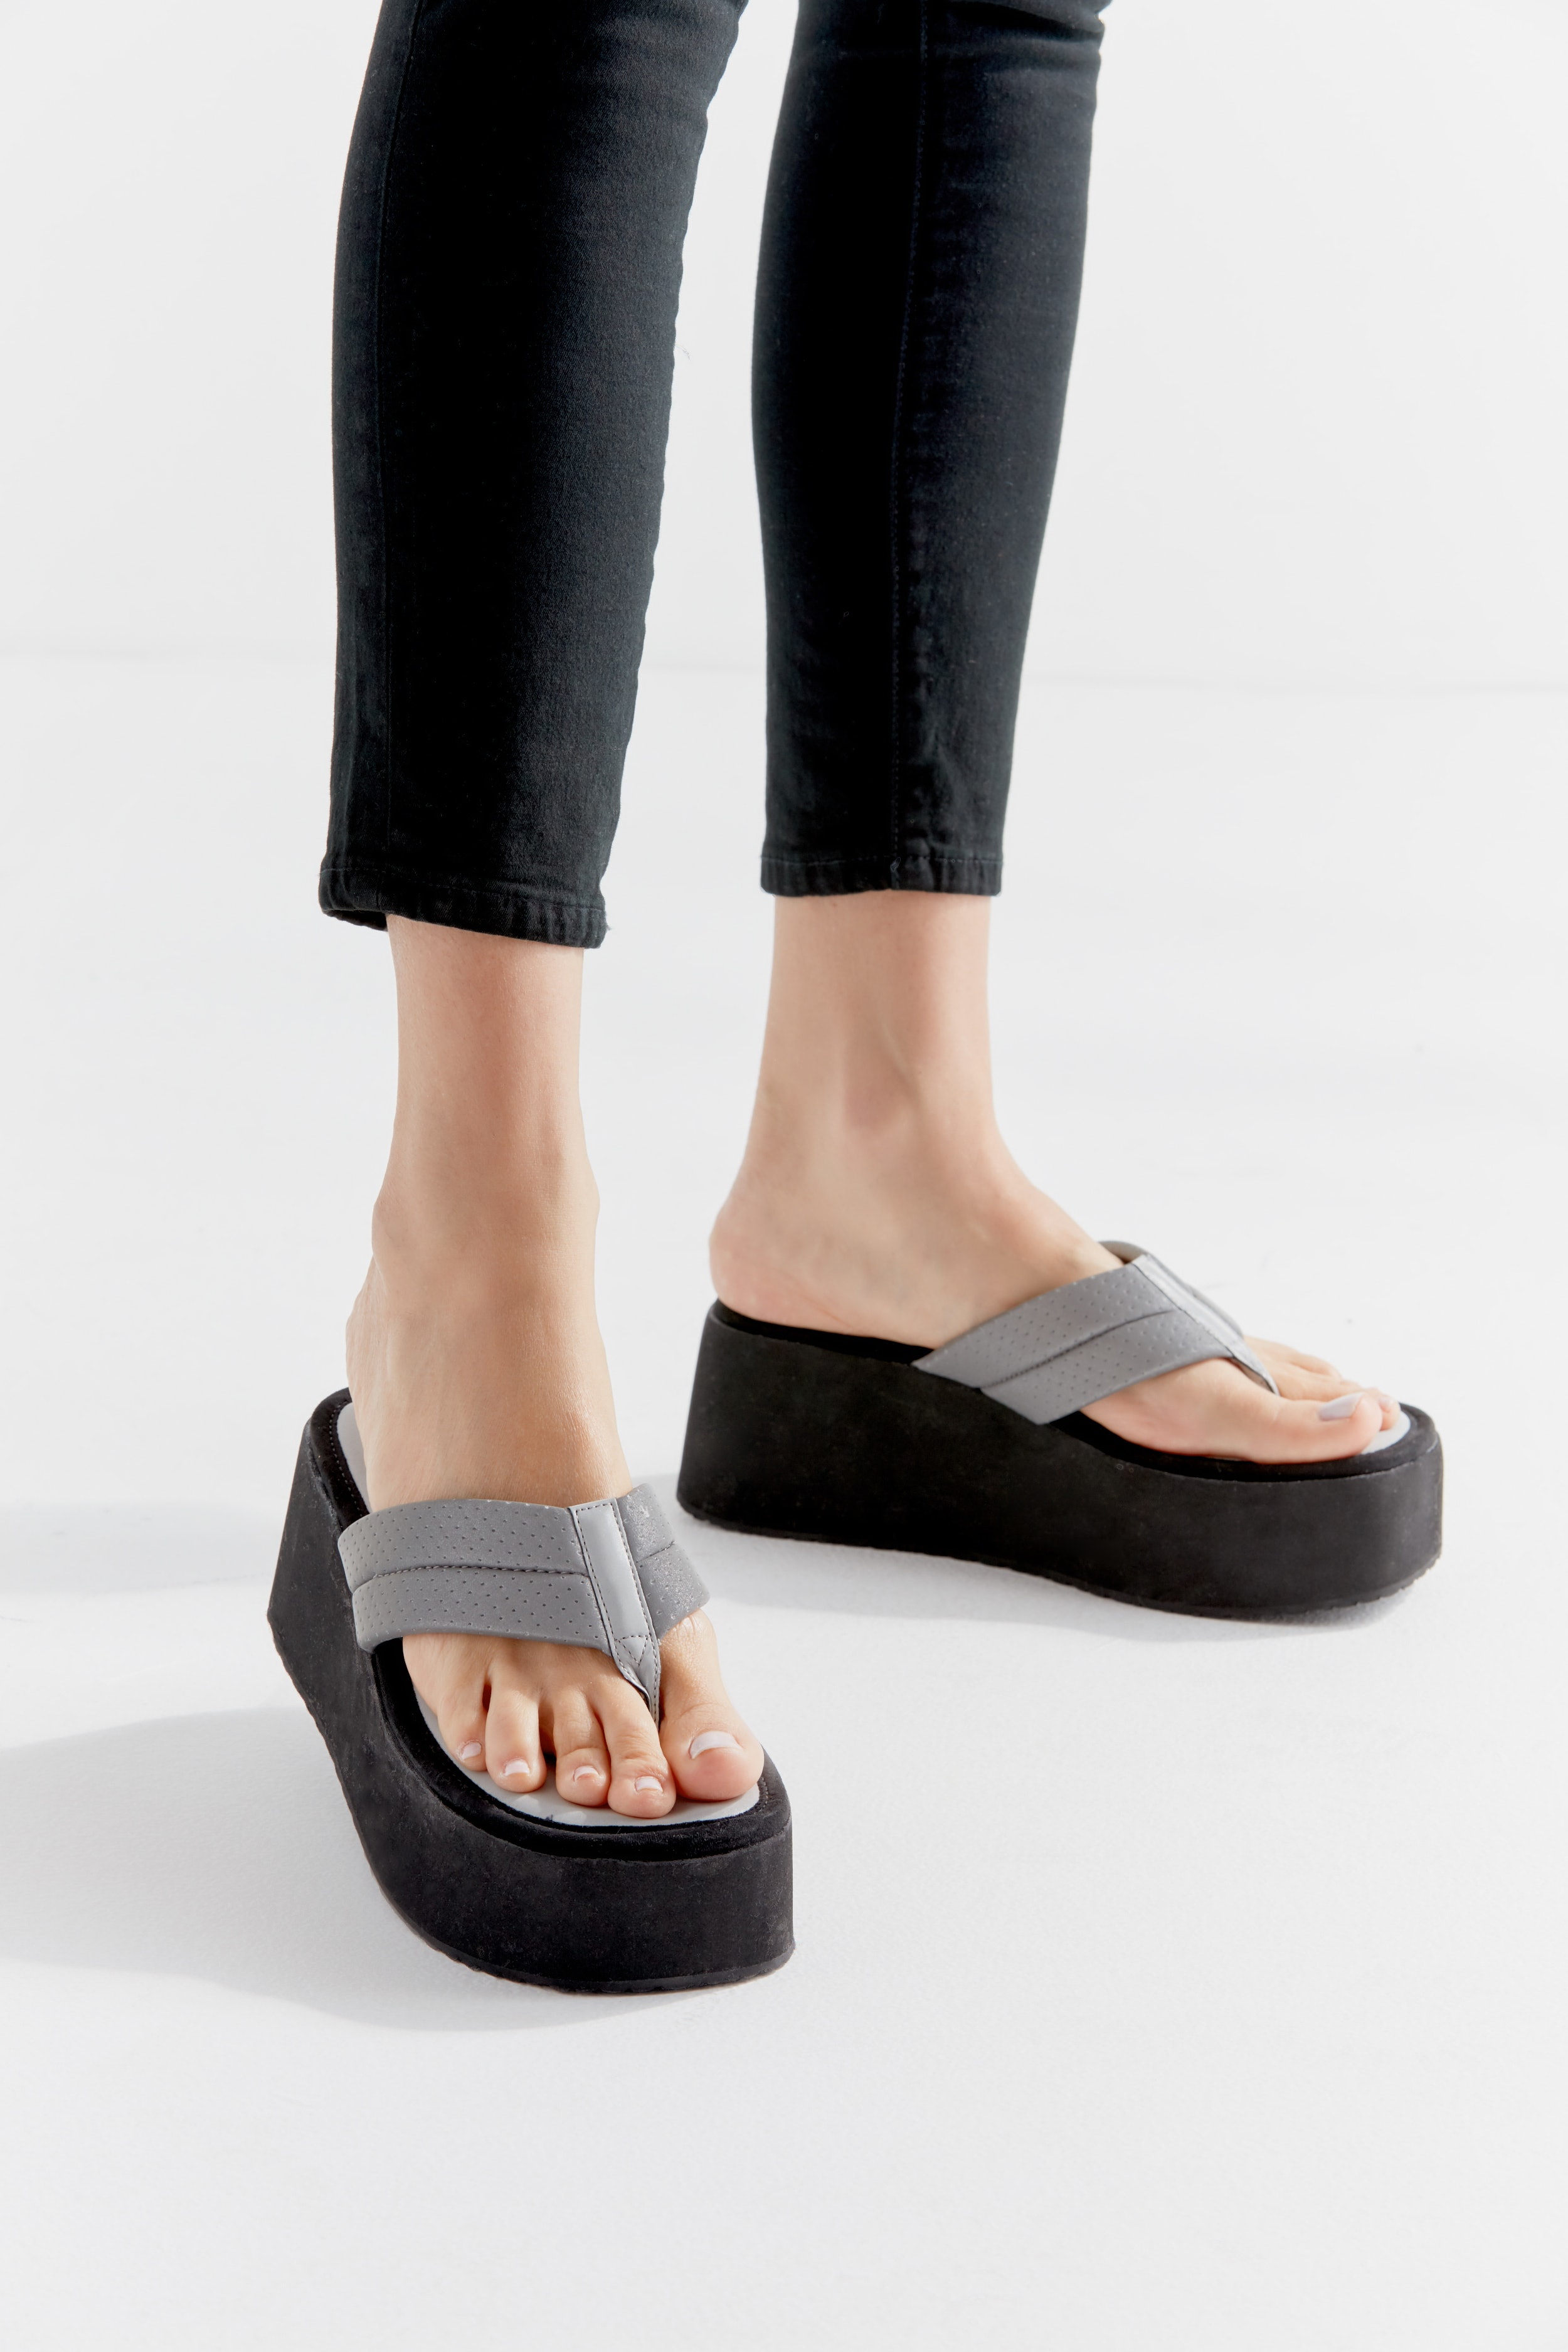 efedae4226a The Steve Madden x Urban Outfitters Capsule Collection Includes Your  90s  Slinky Platform Sandals With A Twist